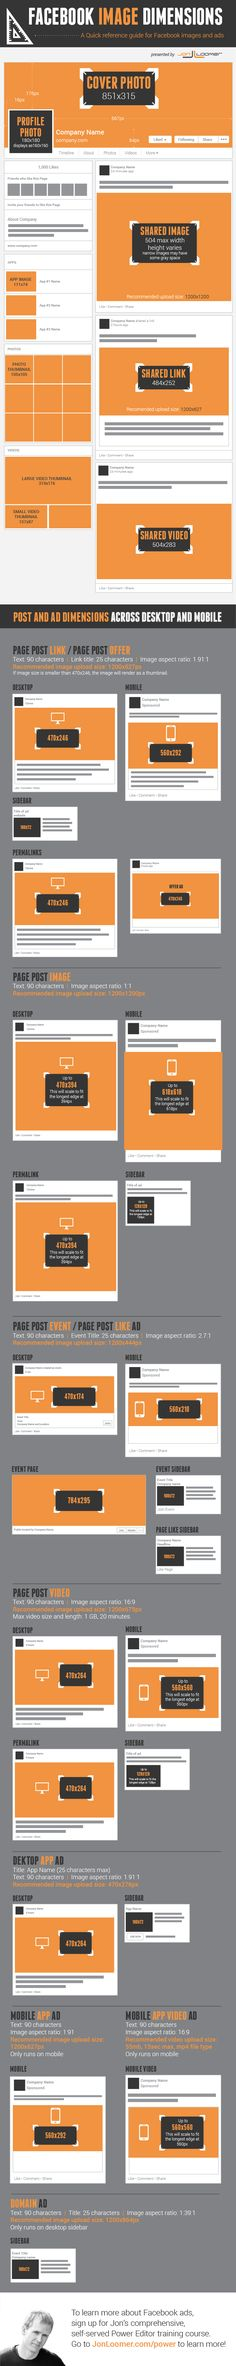 NEW newsfeed facebook image dimensions All Facebook Image Dimensions: Timeline, Posts, Ads [Infographic]